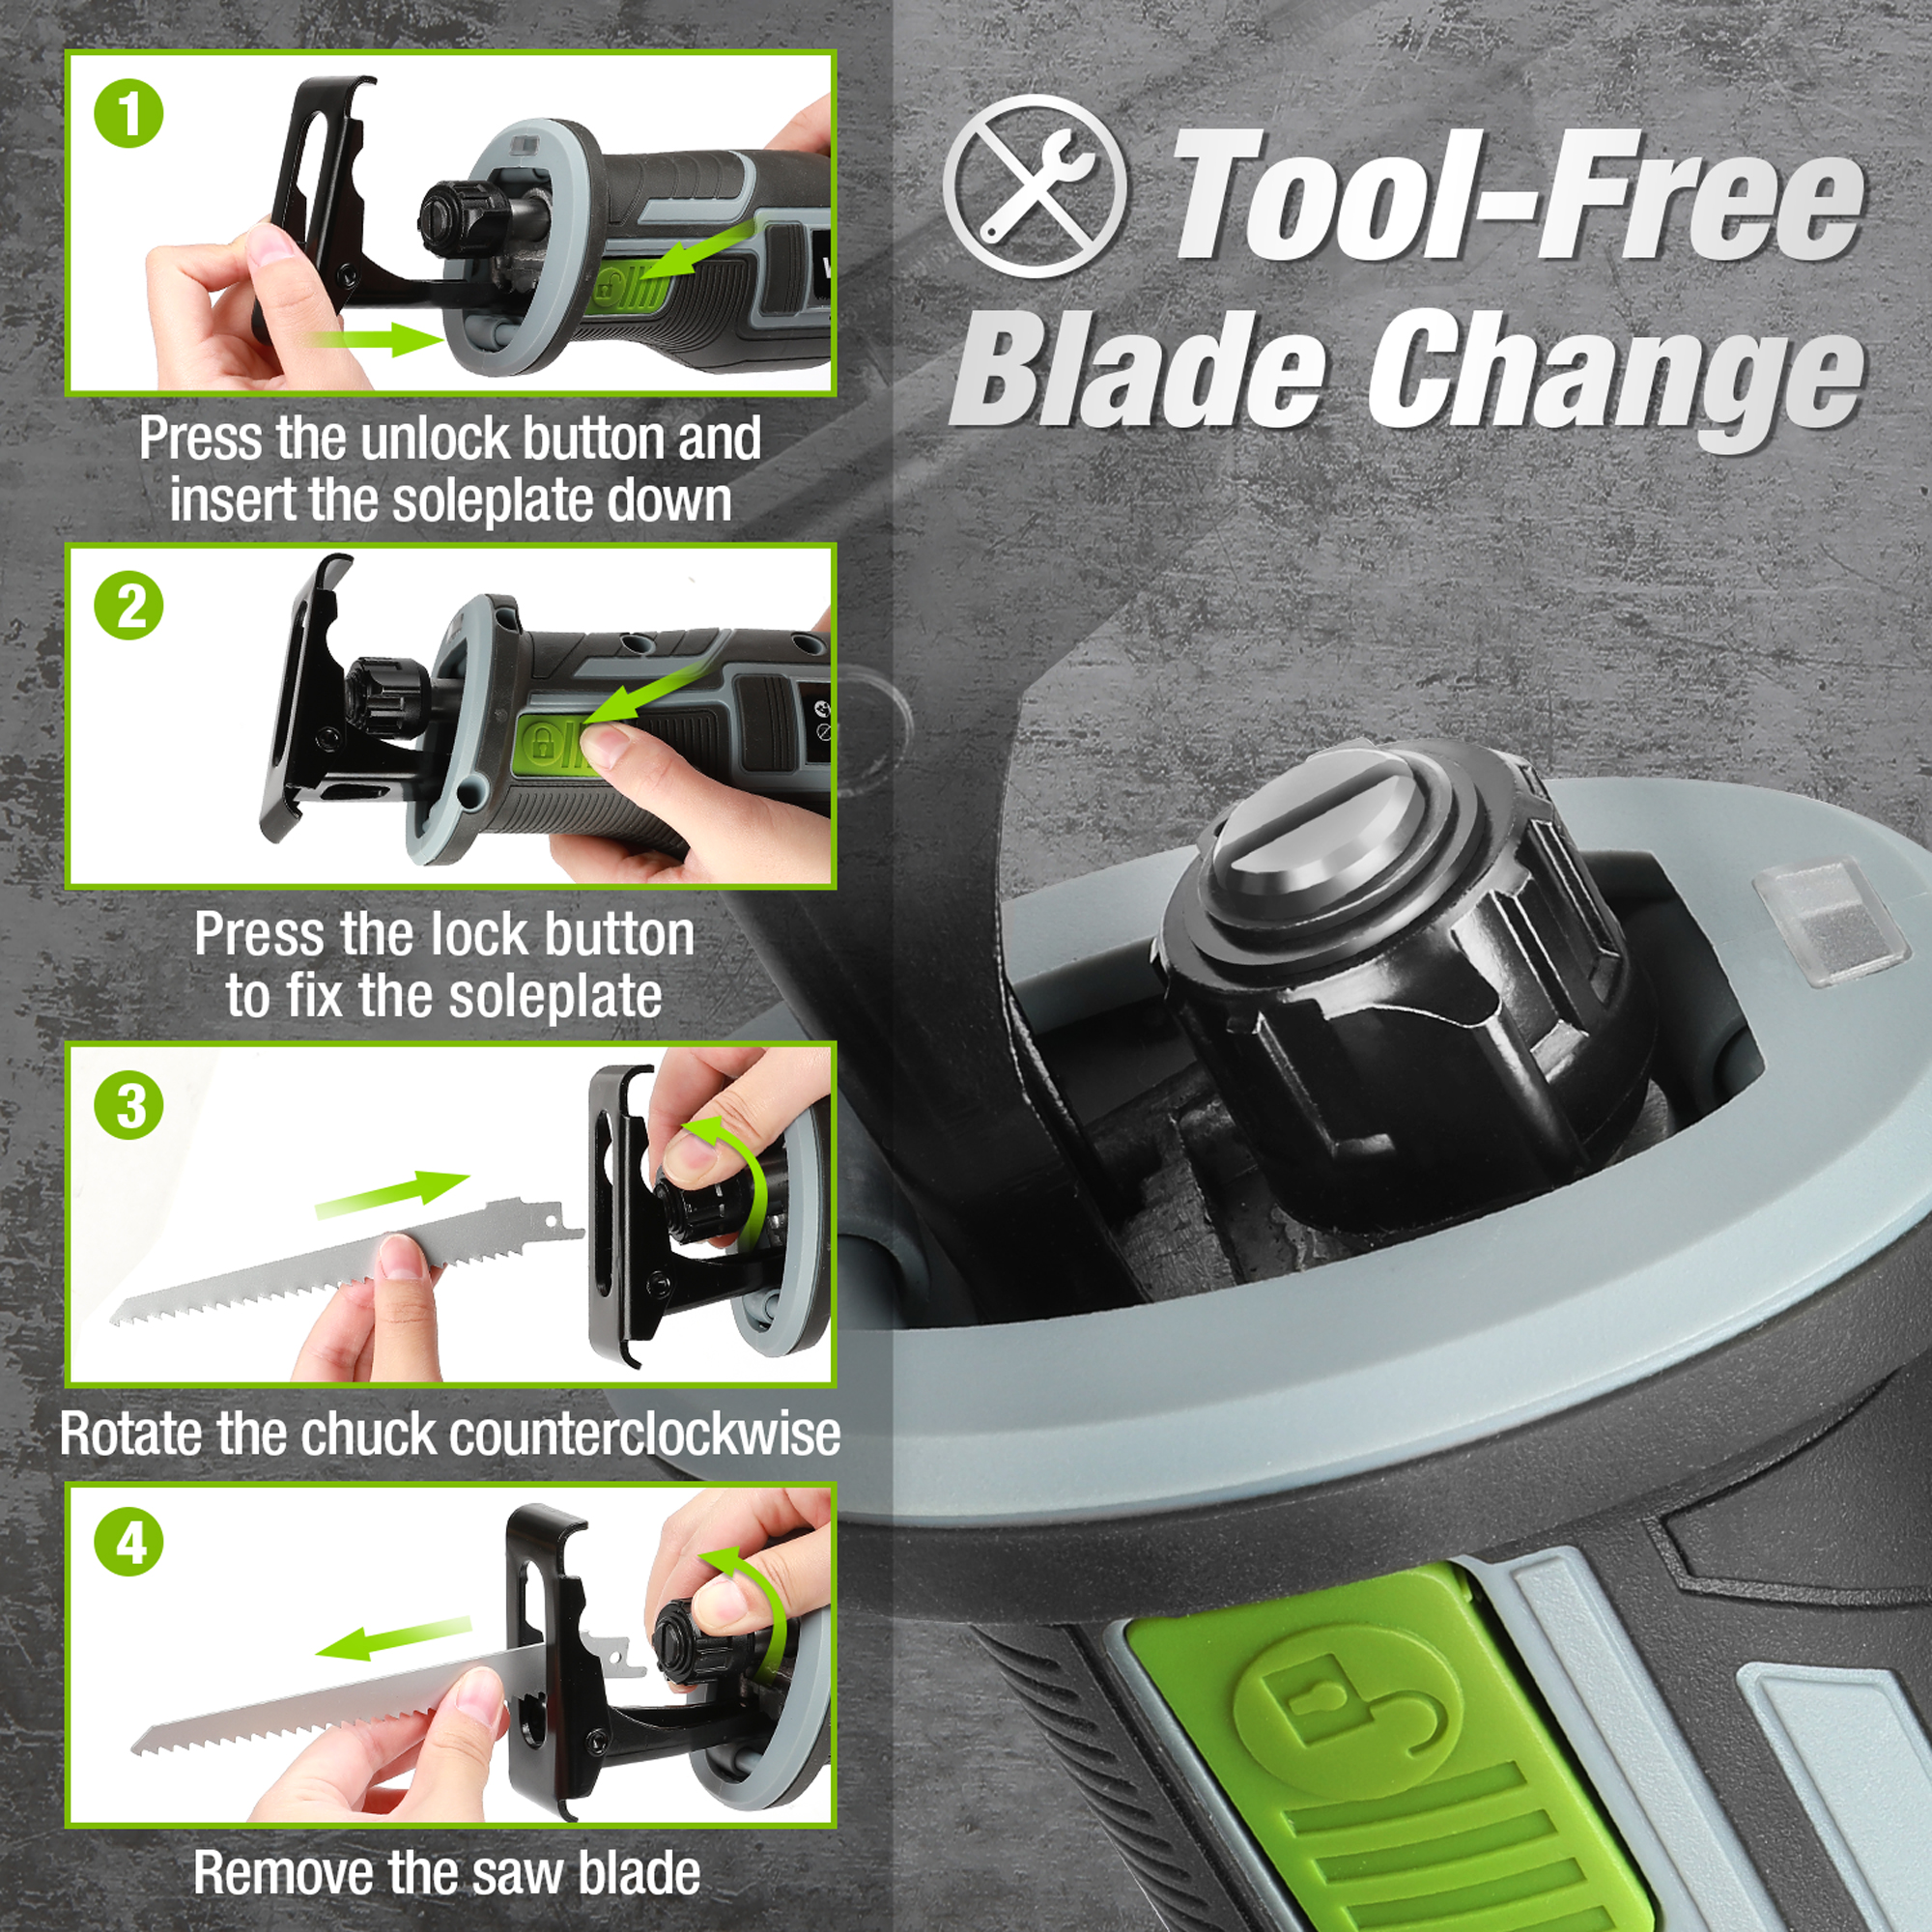 How to insert Blade in WORKPRO 20V Cordless Reciprocating Saw